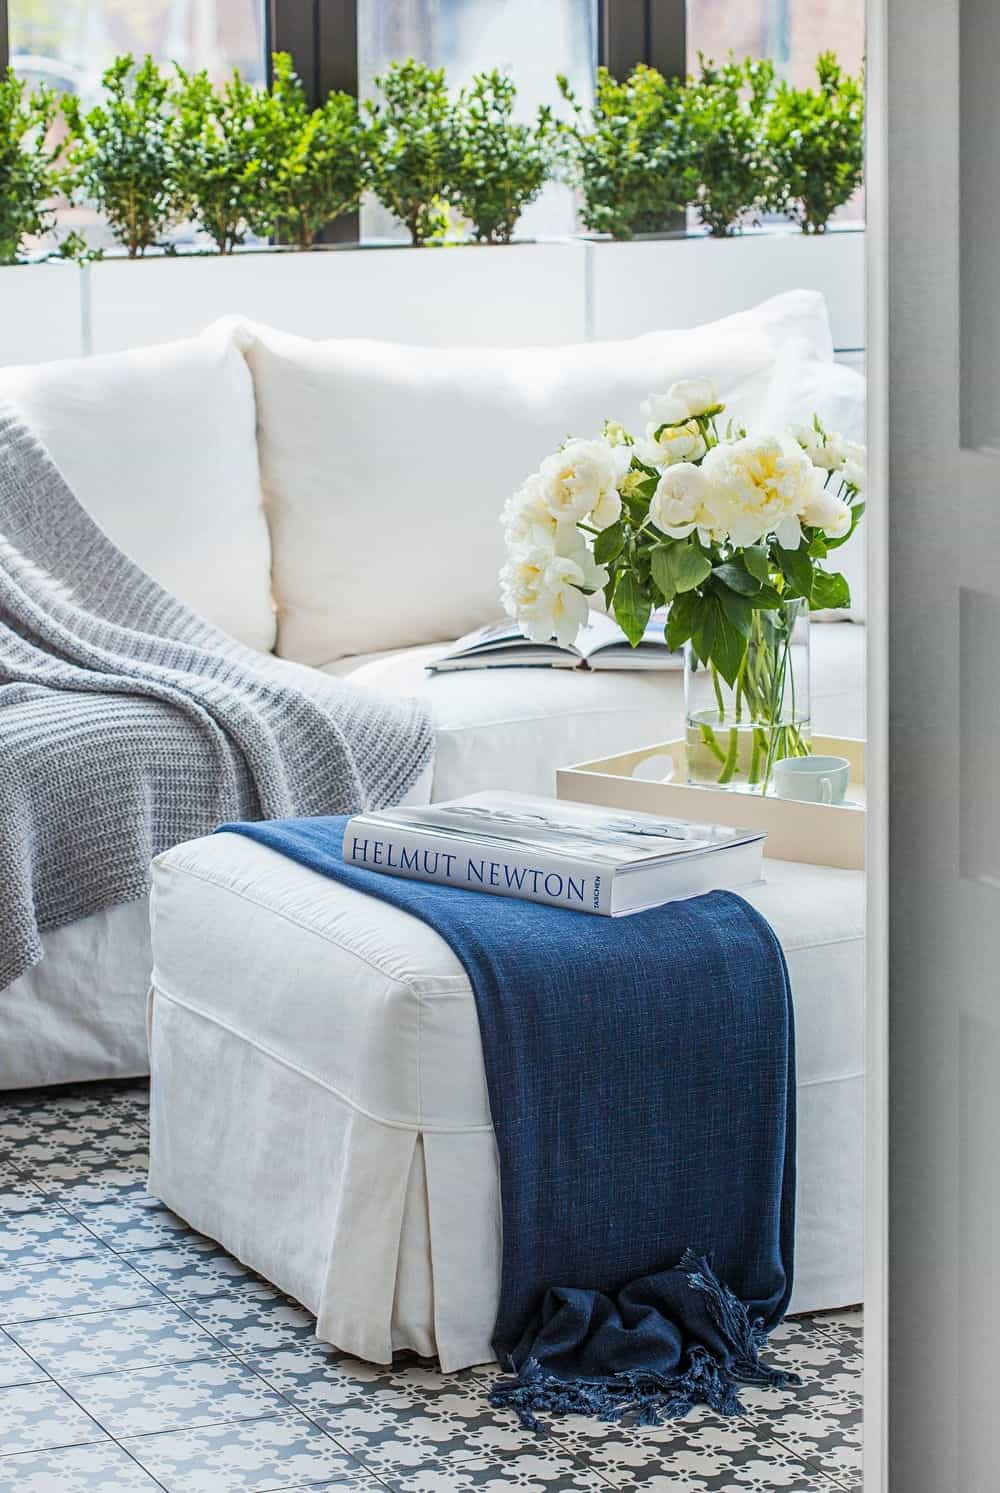 Close up look of the comfy sofa set in the garden's living space. Photo credit: Erik Rotter